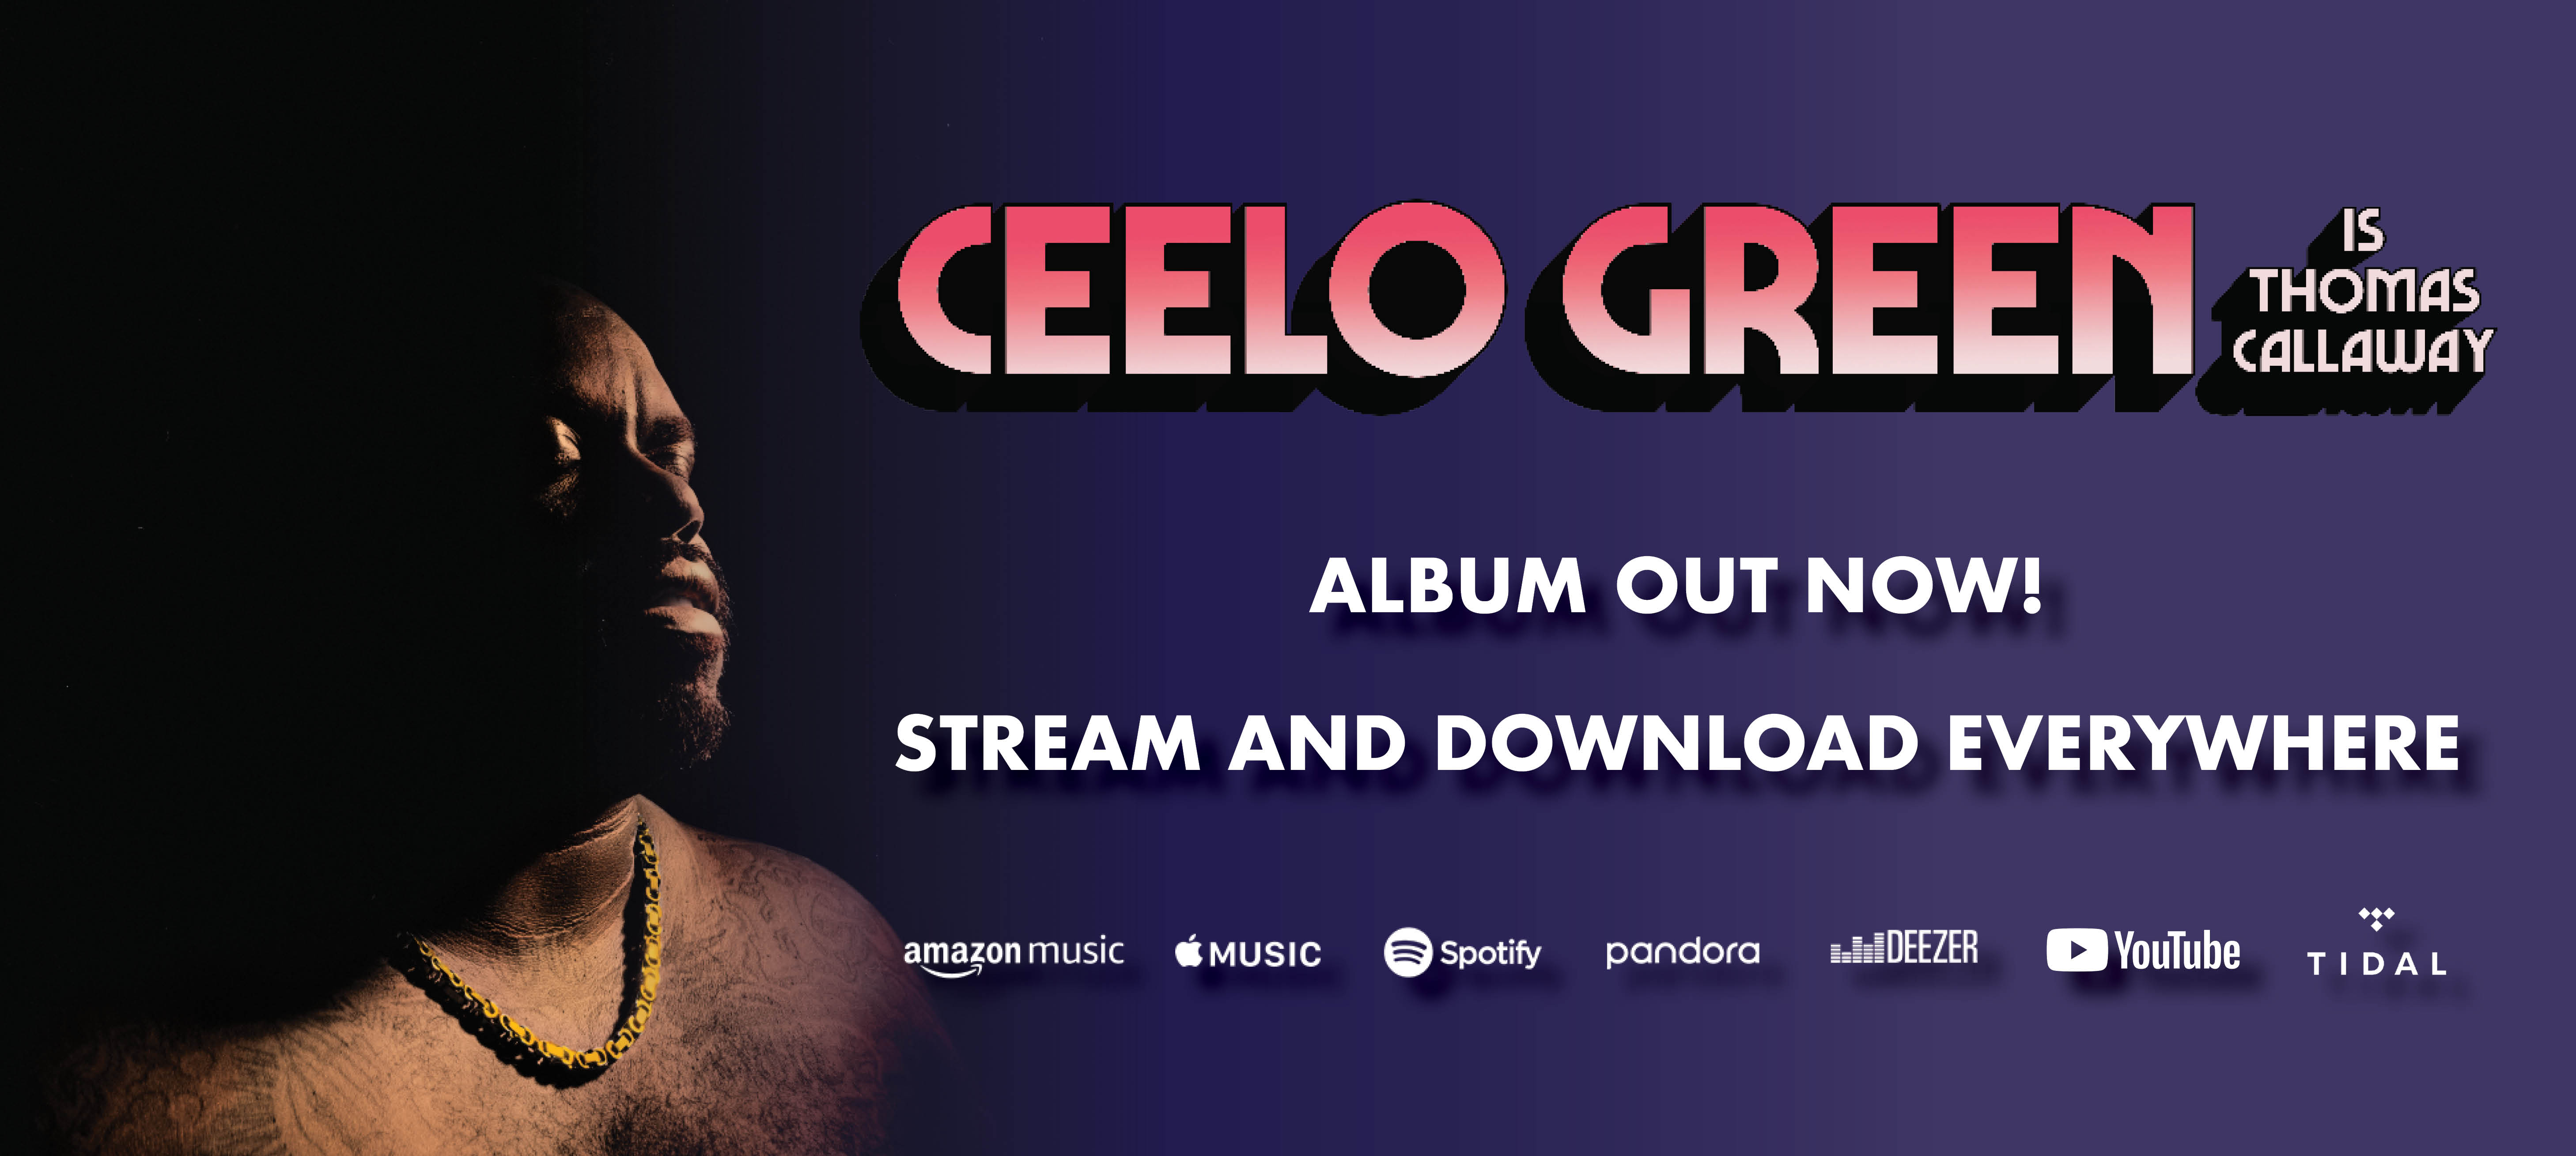 Ceelo is Thomas Callaway - Album Out Now - Stream and Download Everywhere